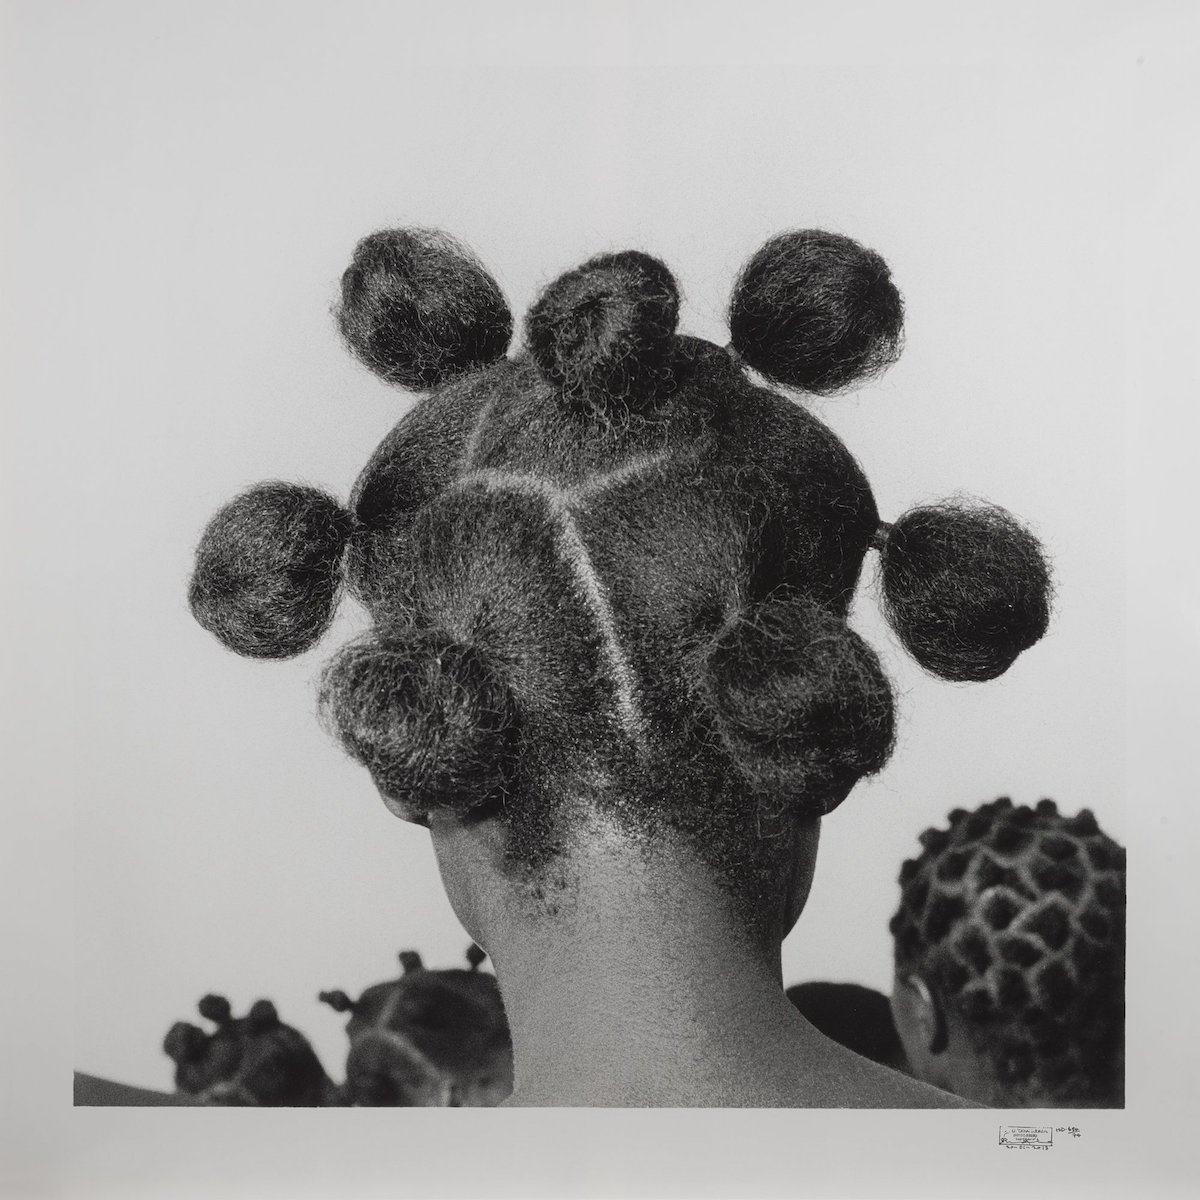 """A photo by Nigerian photographer J.D. 'Okhai Ojeikere, to appear as part of """"Rituals of Resilience"""" at Mia"""